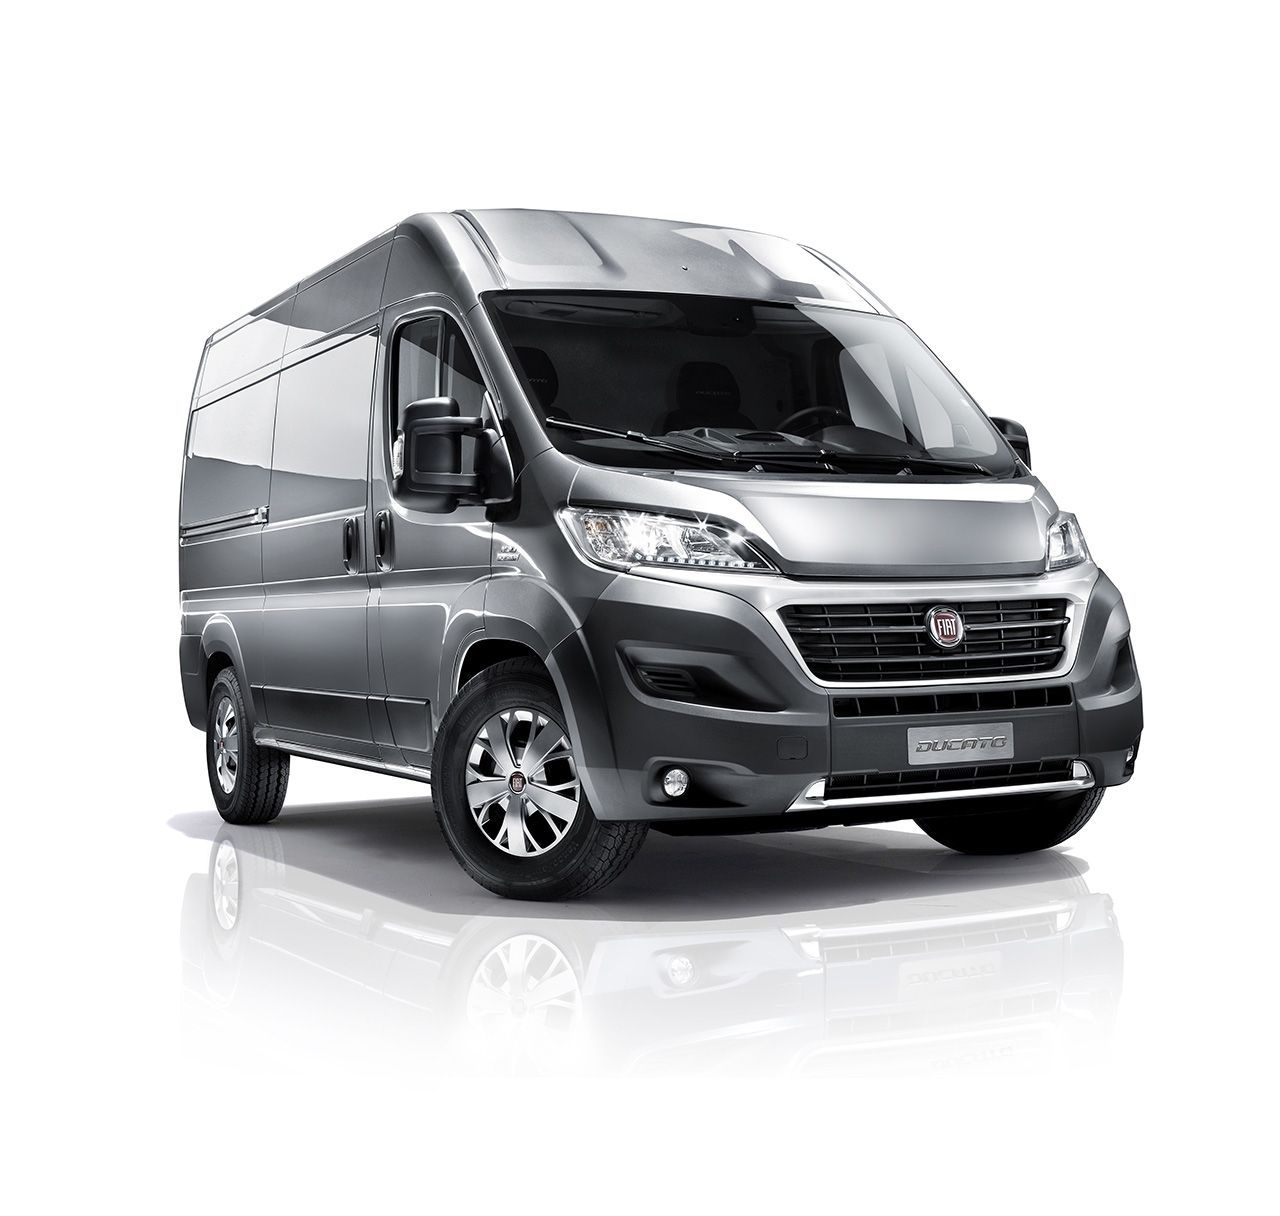 la g n ration 2014 des fiat ducato citro n jumper et peugeot boxer arrive l 39 argus. Black Bedroom Furniture Sets. Home Design Ideas